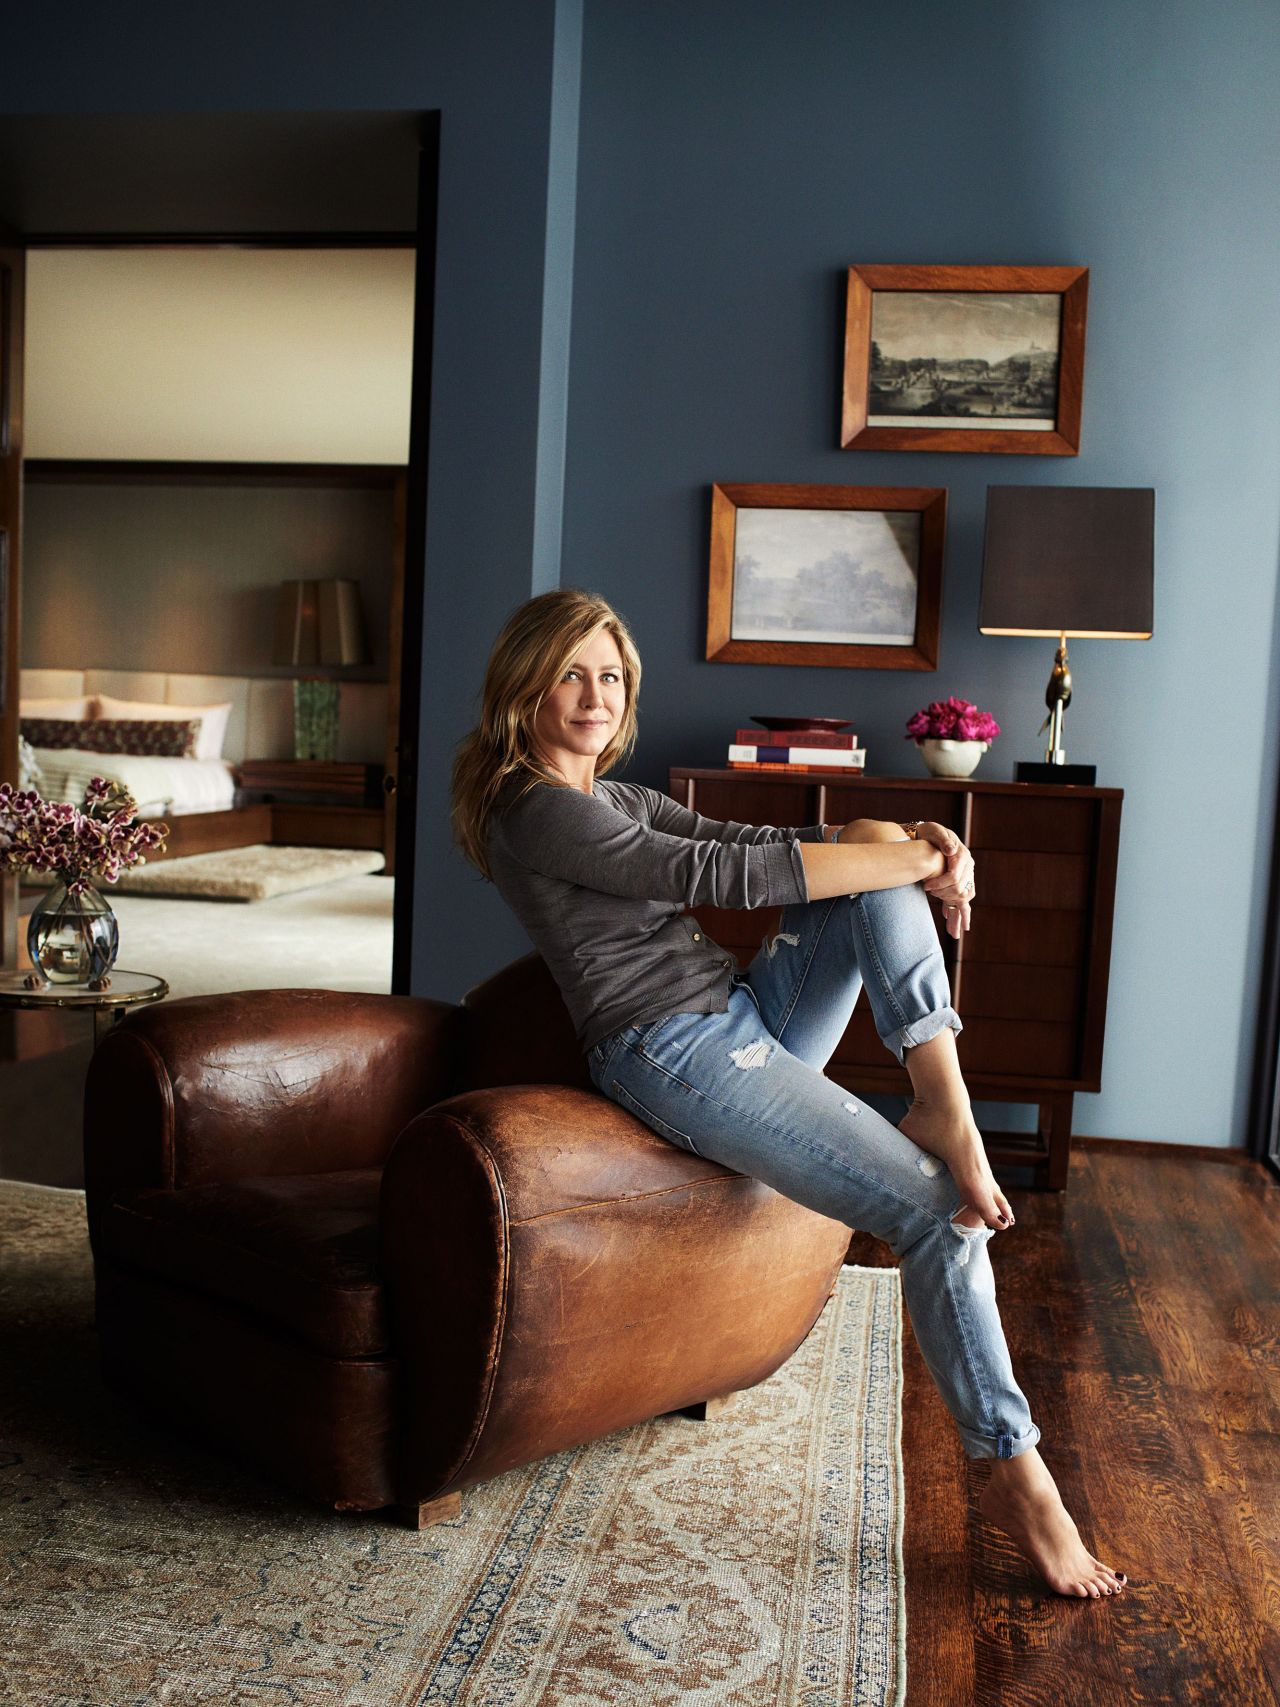 Jennifer Aniston stunning in Architectural Digest's photos. Very sexy celebrity feet :)